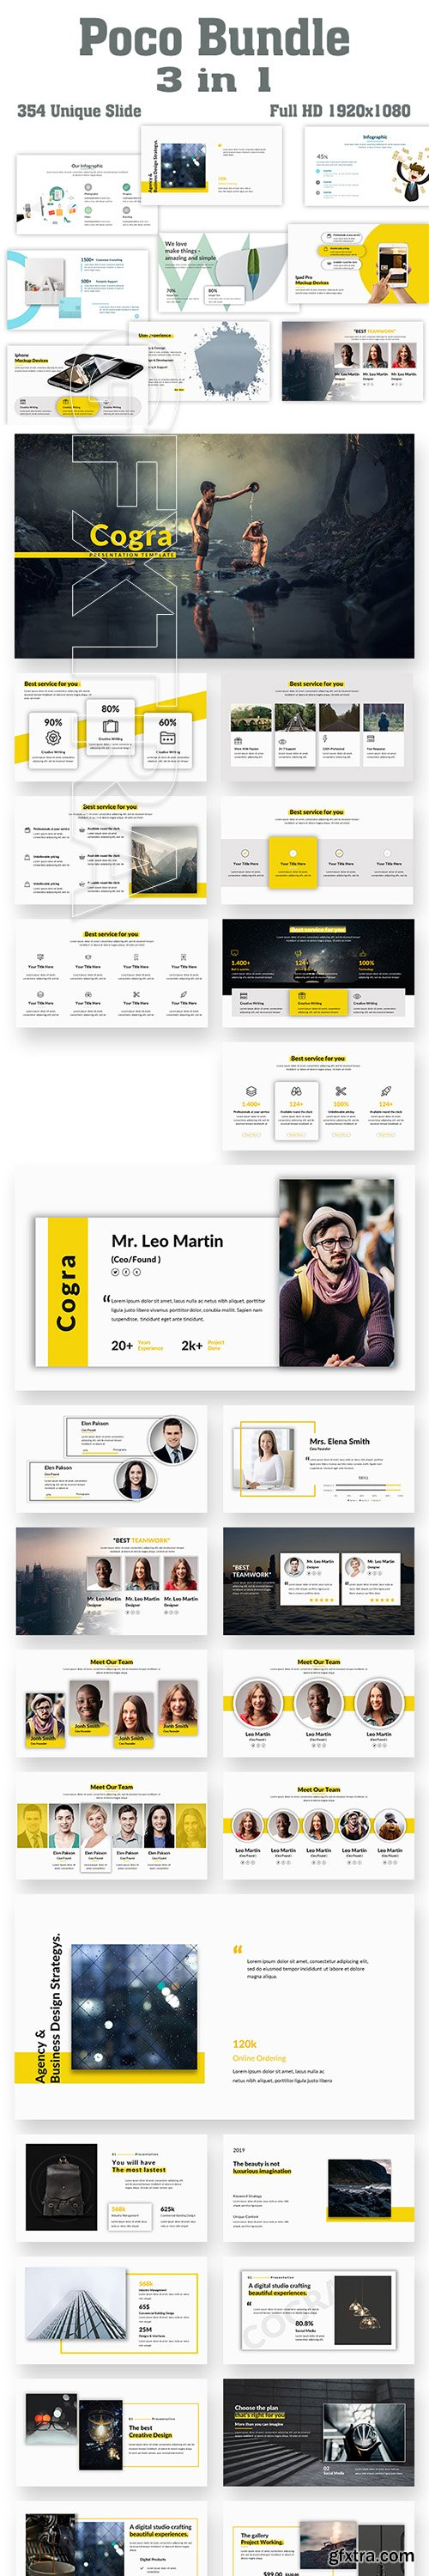 GraphicRiver - Poco Bundle 3 in 1 PowerPoint Template 22605805